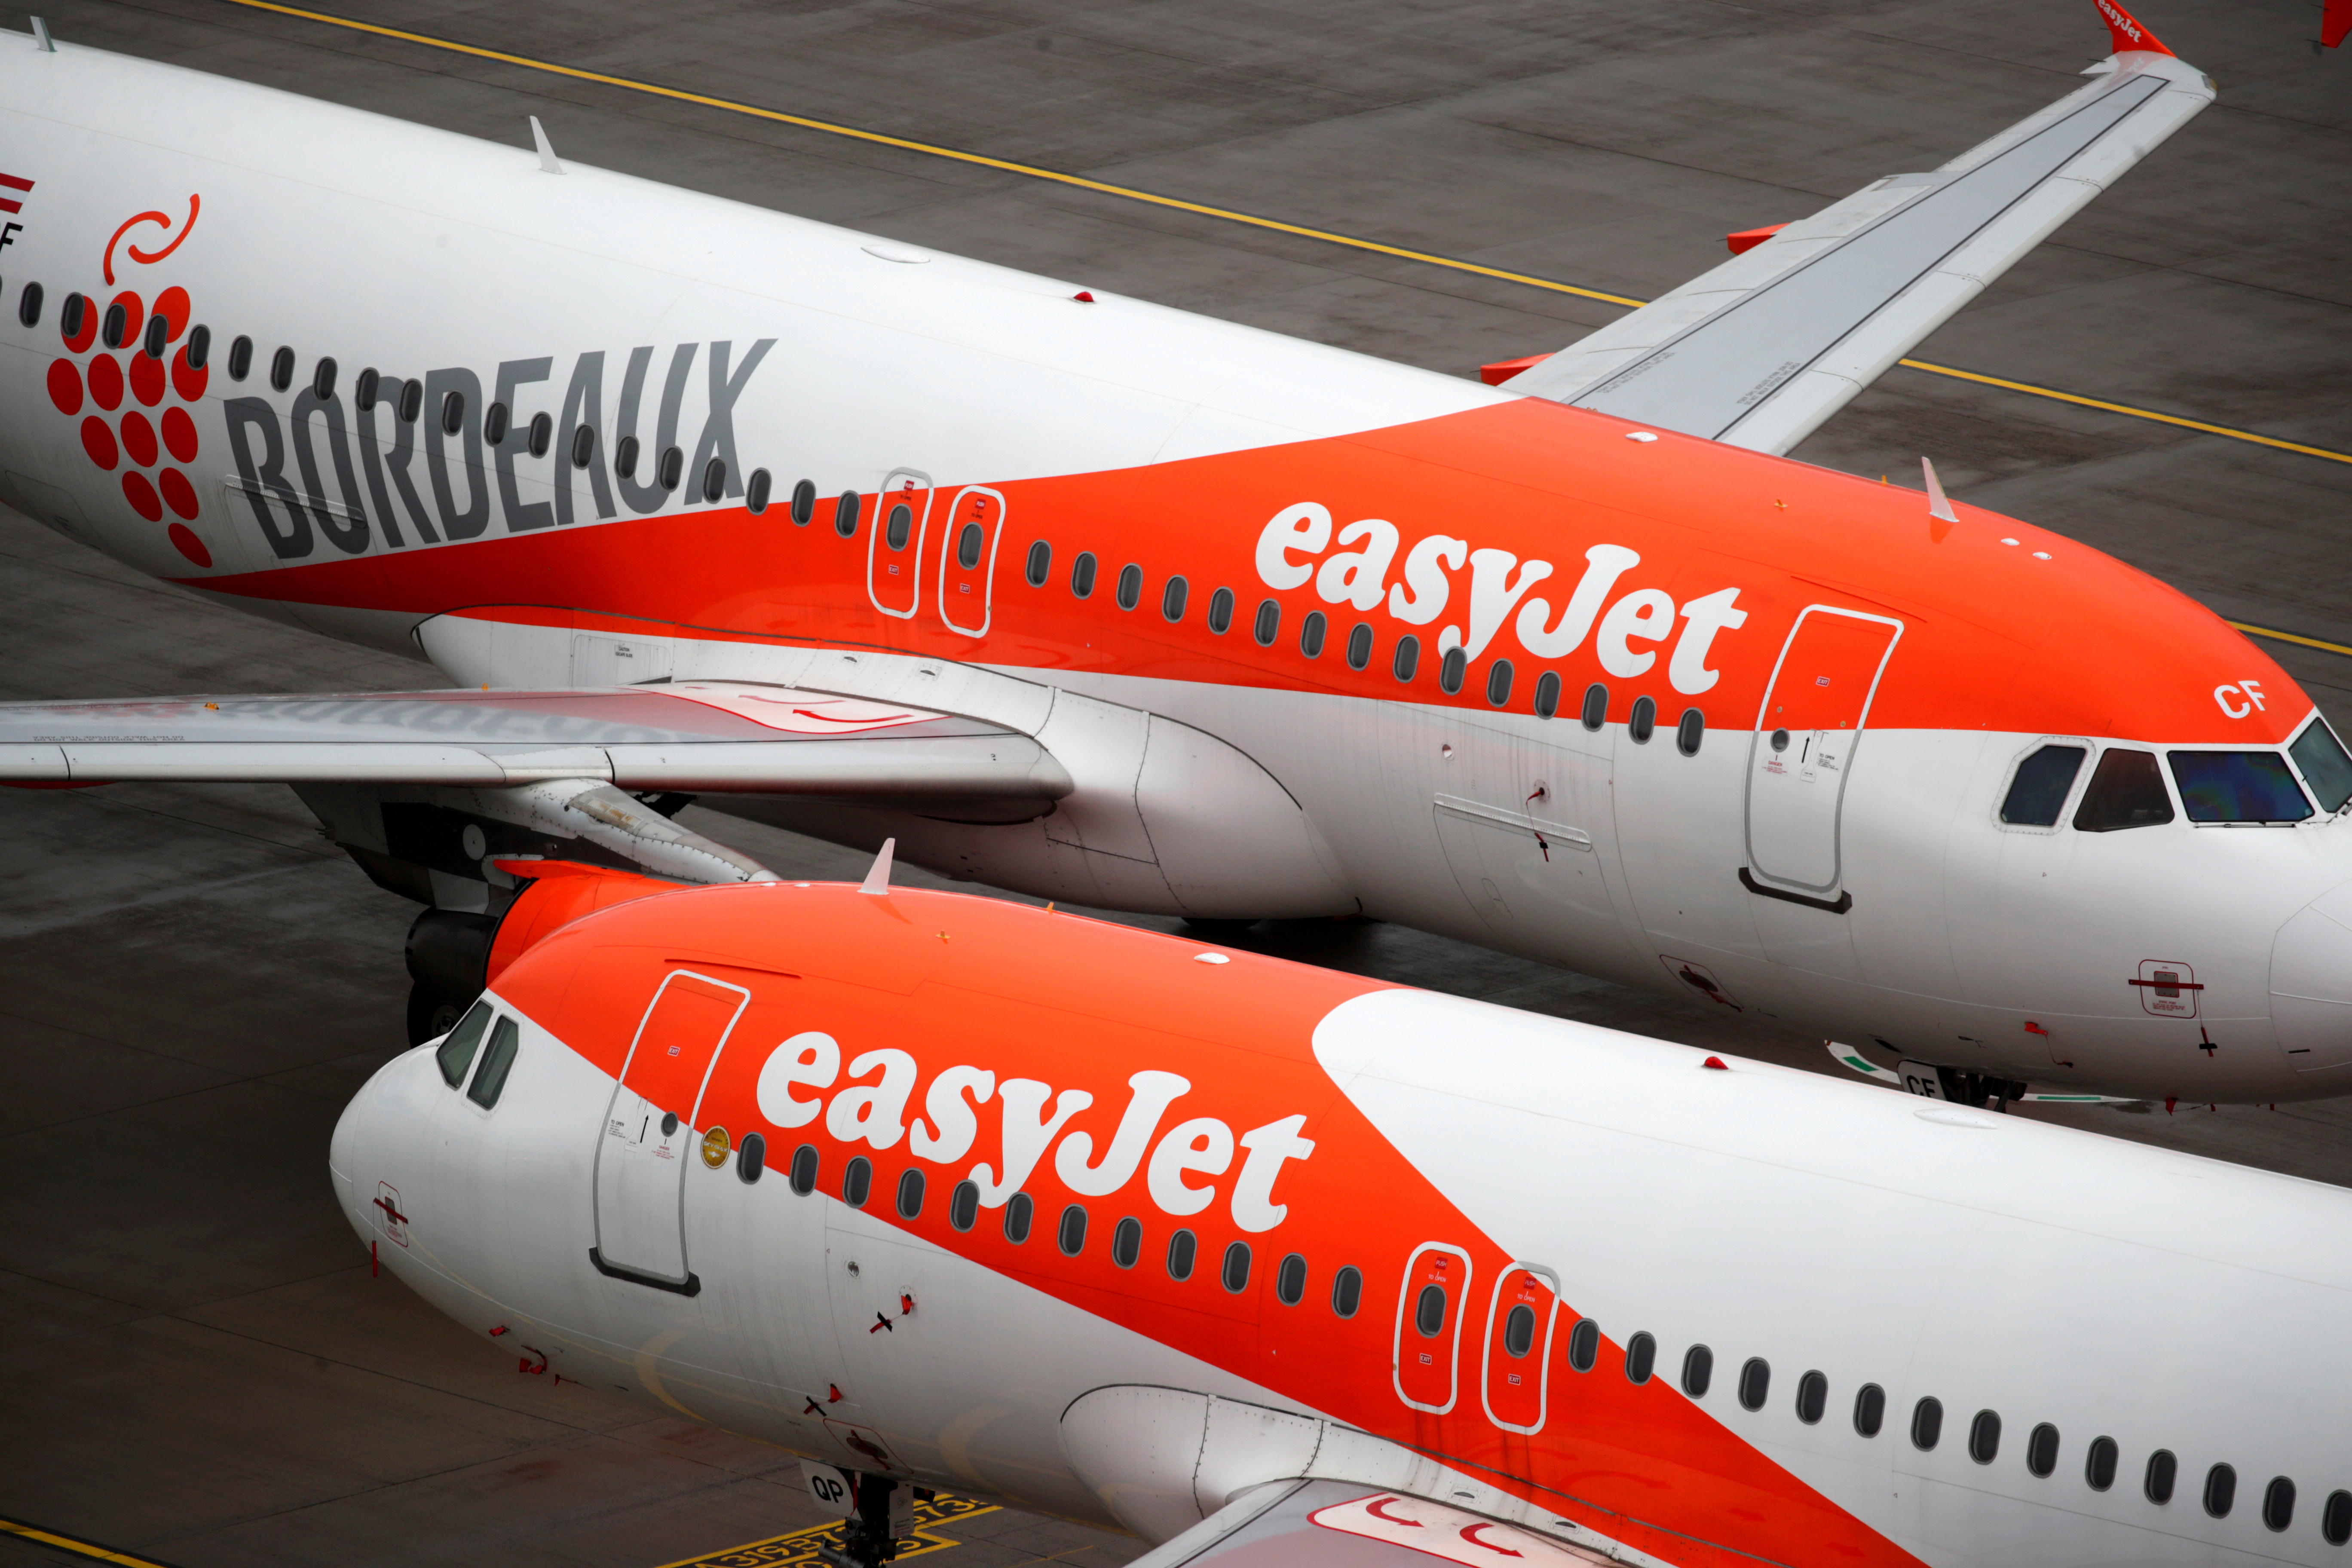 """EasyJet aircrafts are seen on the tarmac at Terminal 1, marking the official opening of the new Berlin-Brandenburg Airport (BER) """"Willy Brandt"""", in Schoenefeld near Berlin, Germany October 31, 2020. REUTERS/Hannibal Hanschke/Pool"""